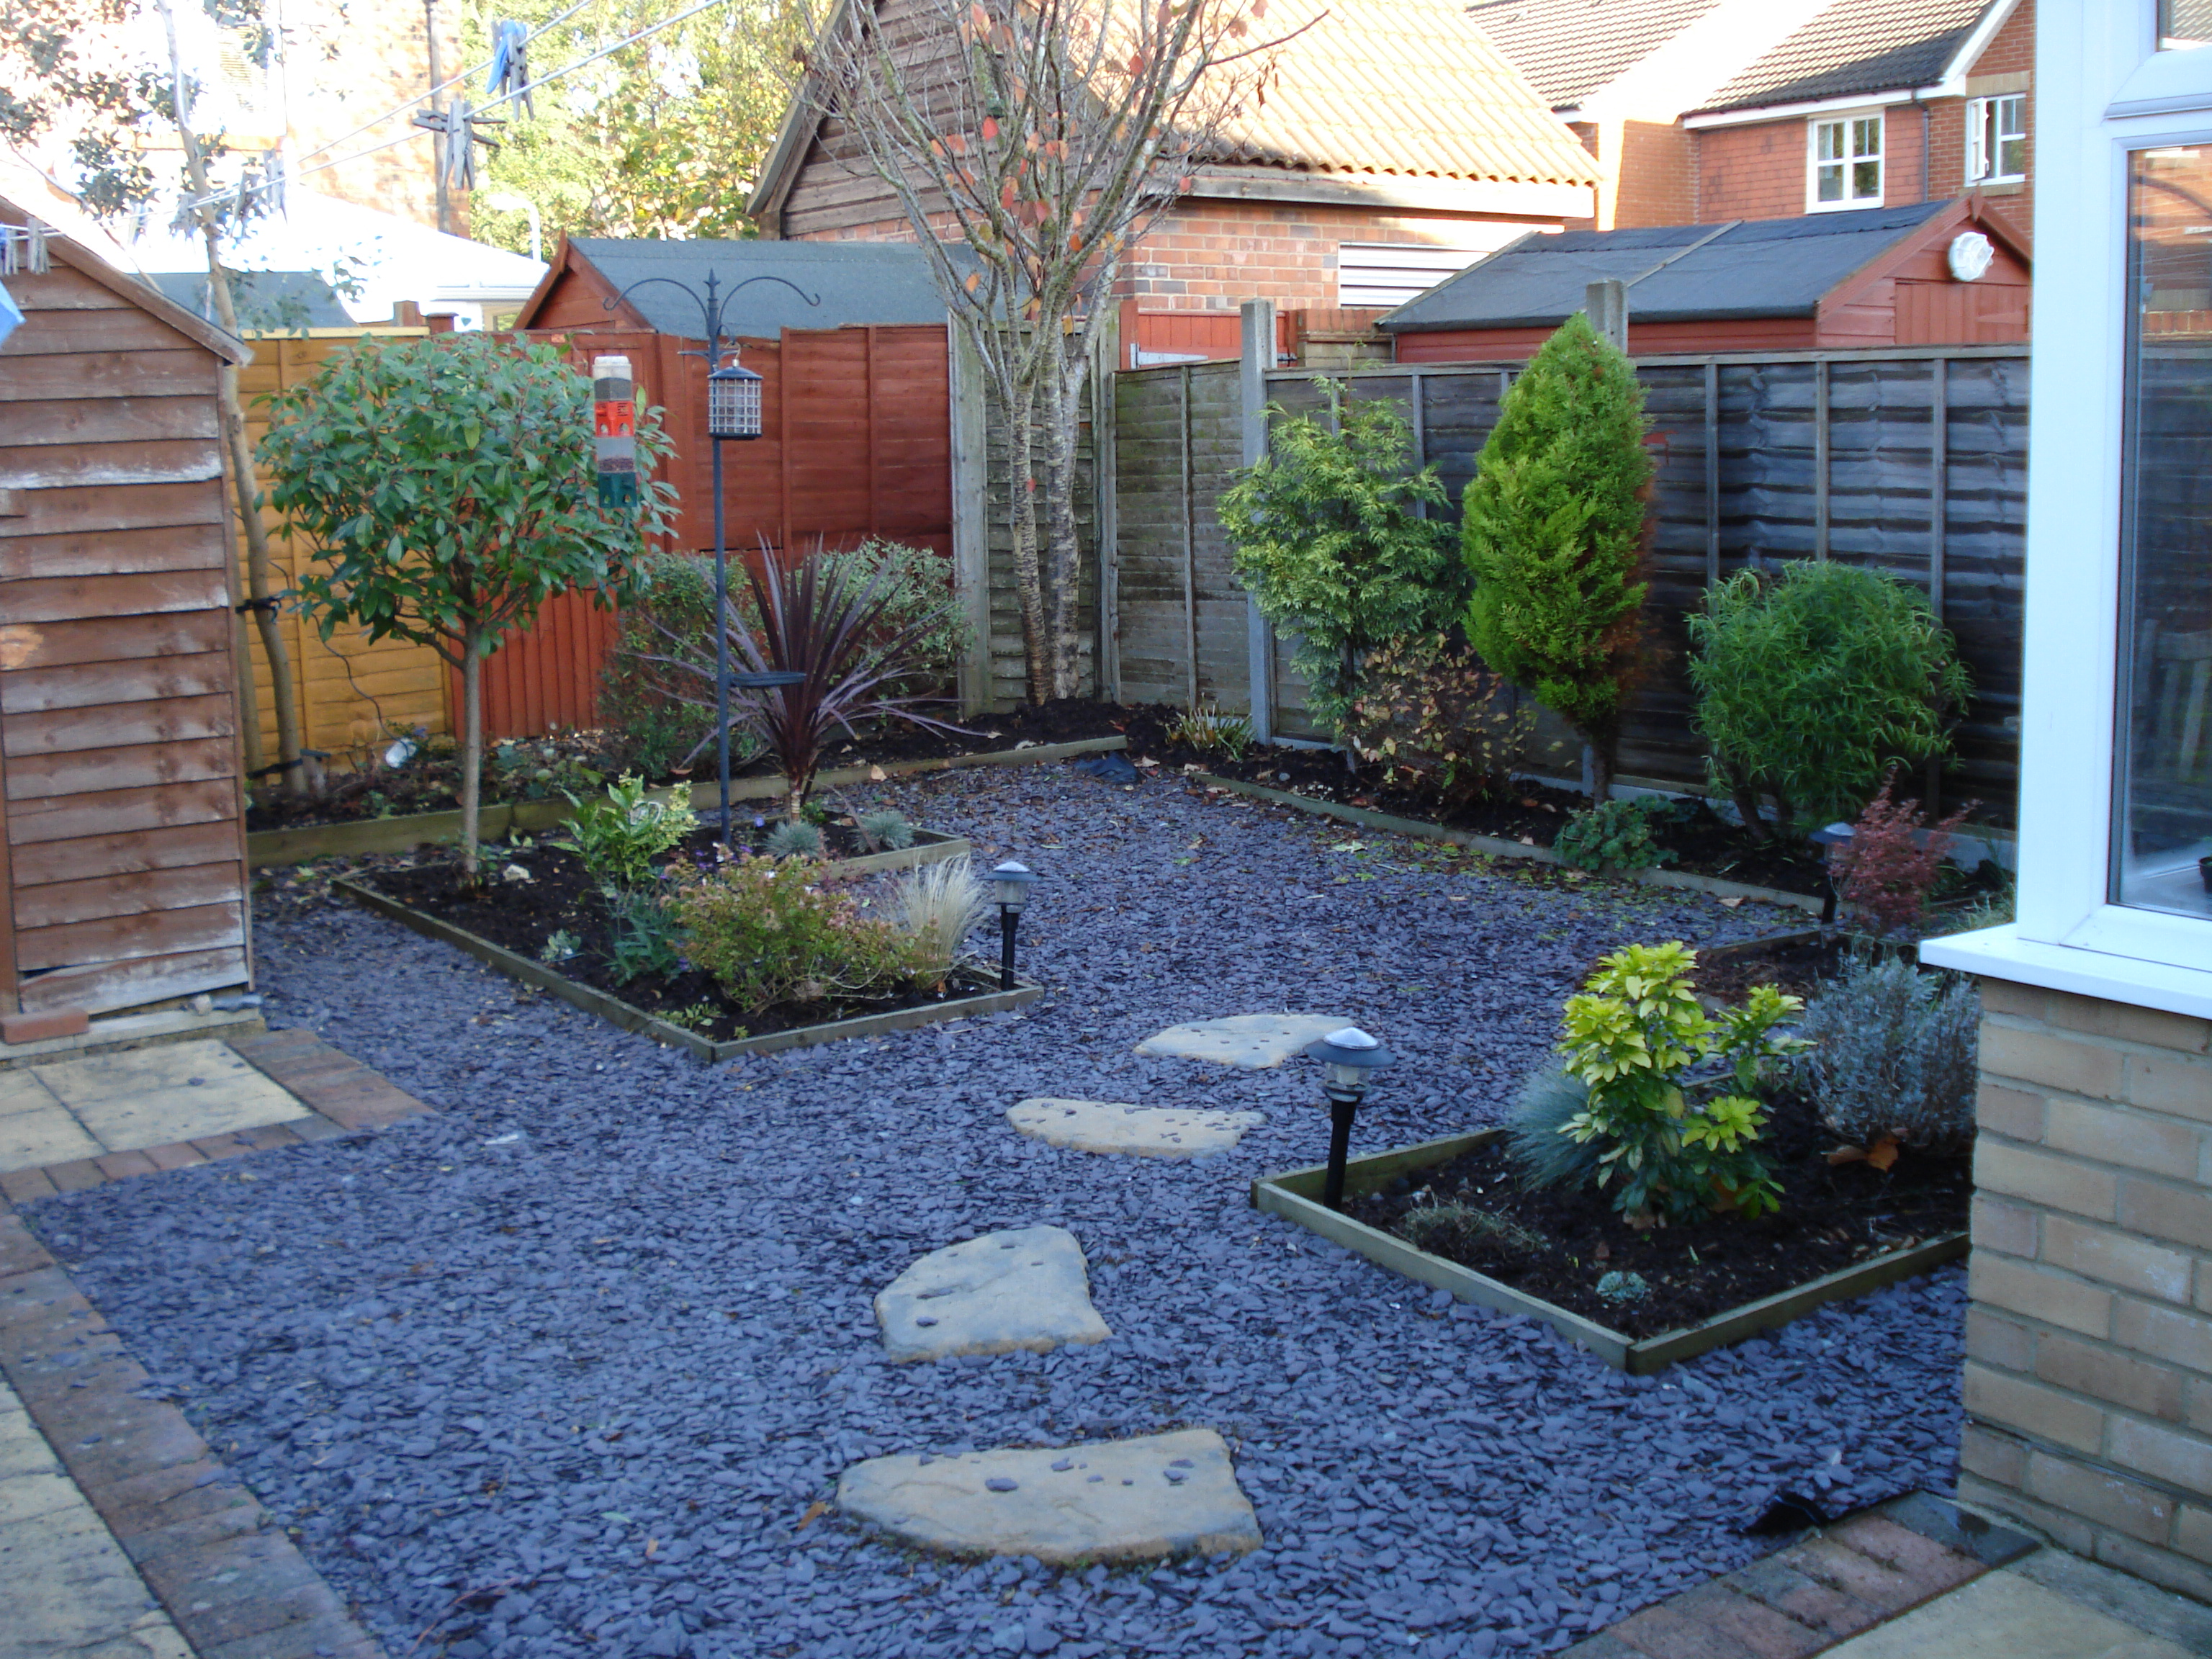 File back garden jpg wikimedia commons for Back garden designs uk